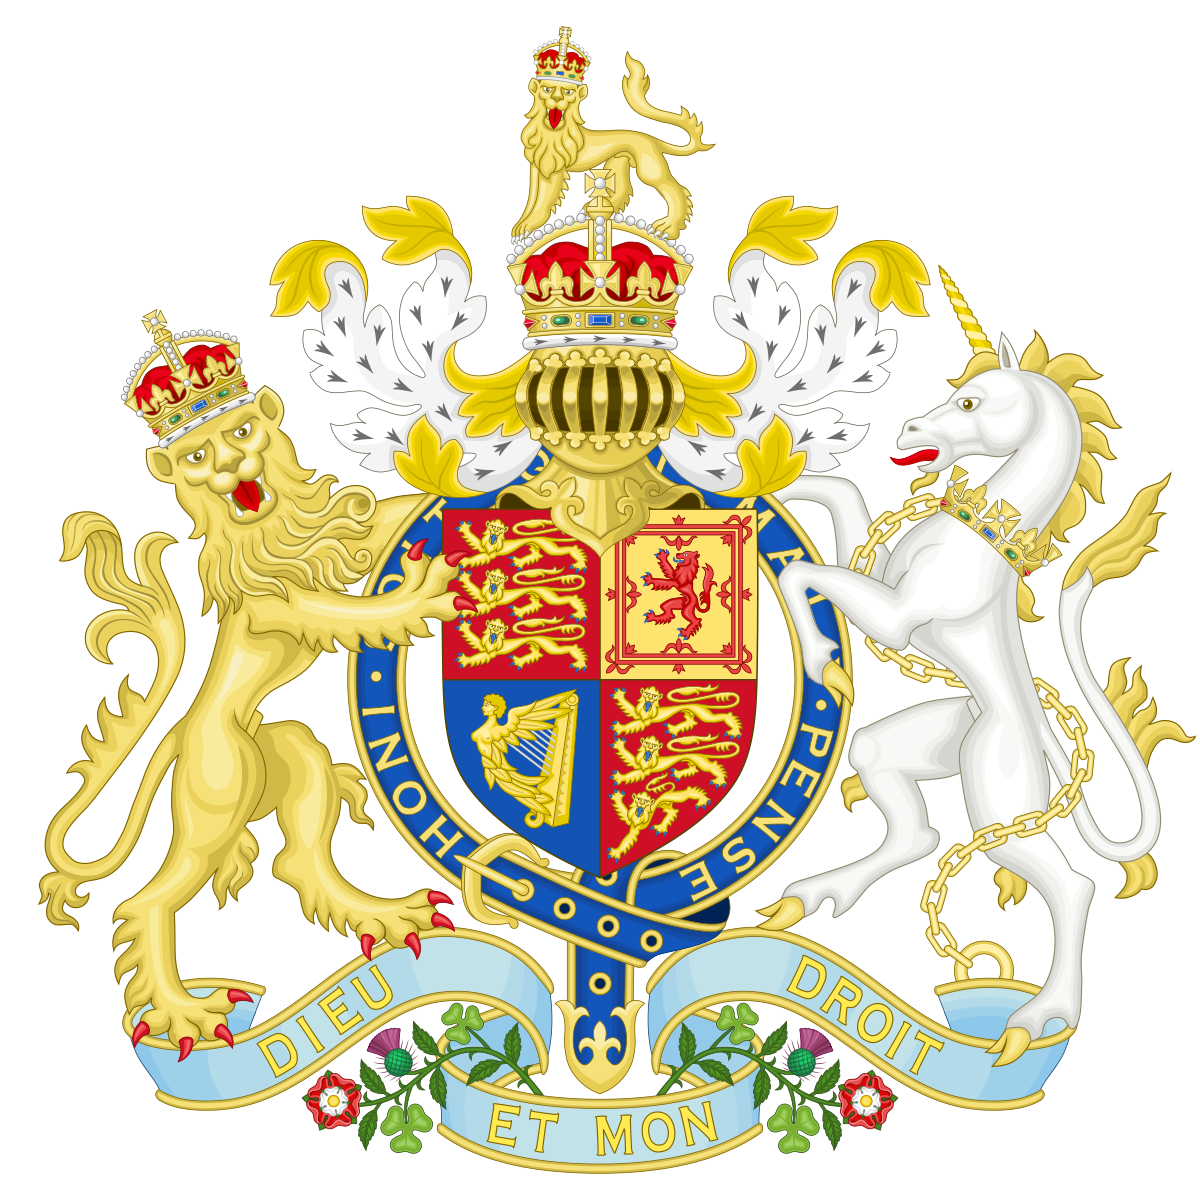 Who is royal in sex act